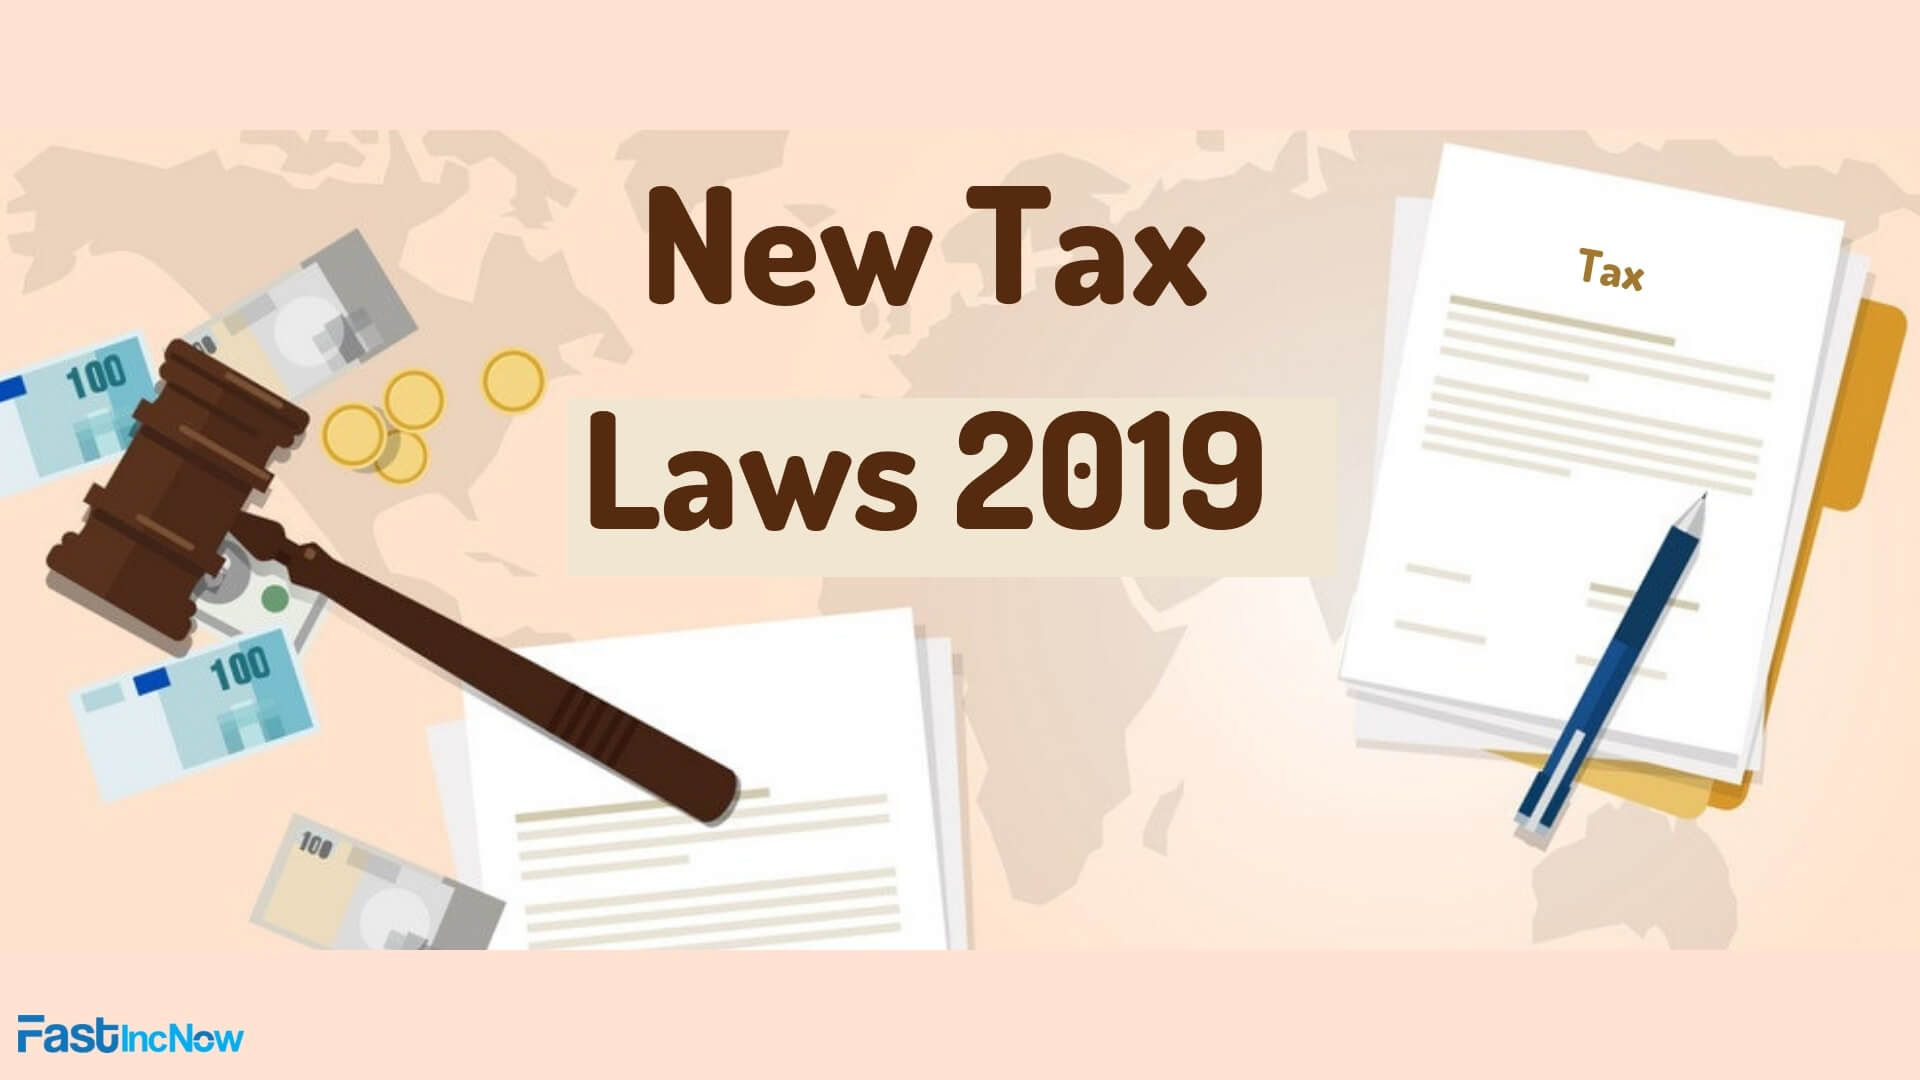 New Tax Laws 2019 How Changes Will Affect The Business Owners